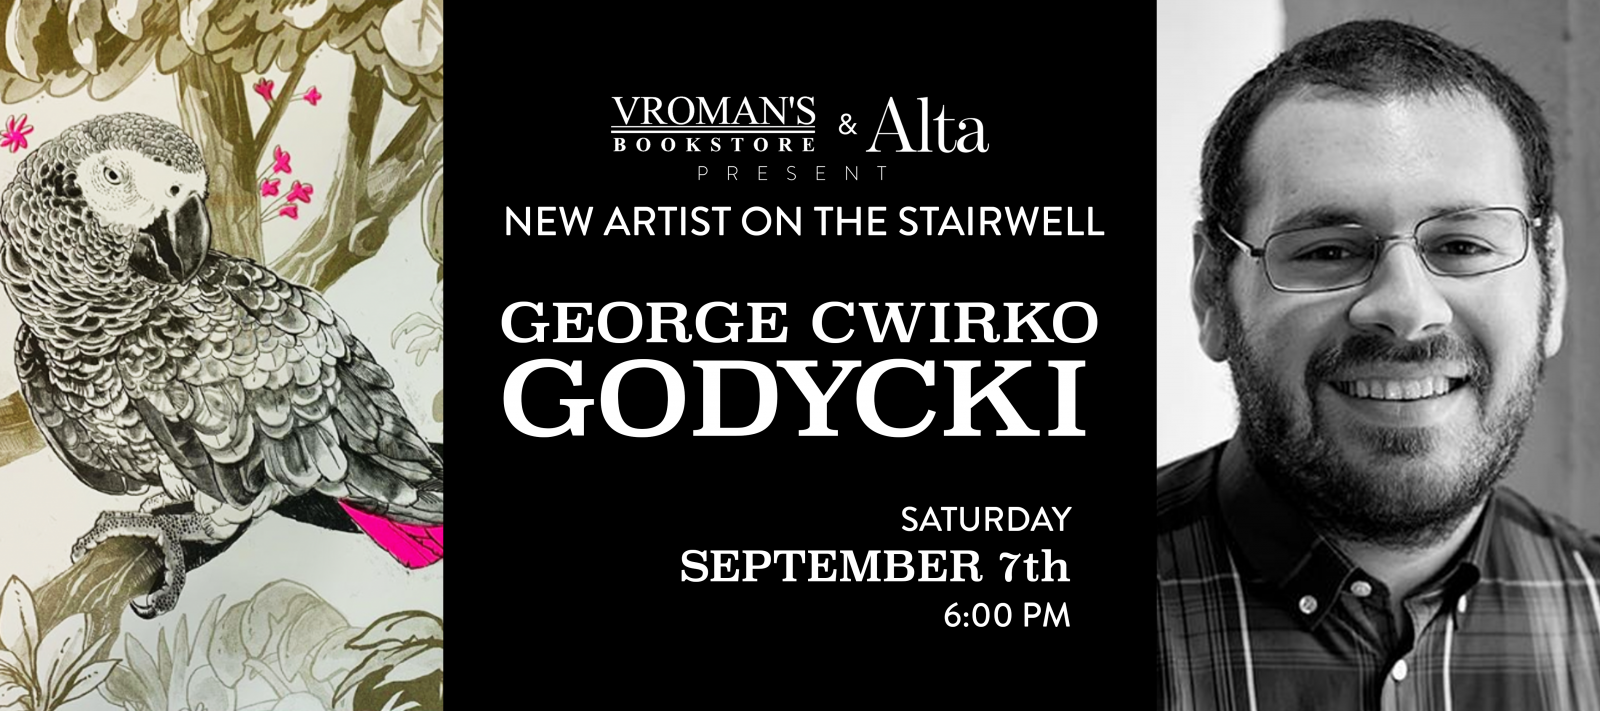 Art on the stairwell reception for George Cwirko Godycki Saturday September 7th at 6pm